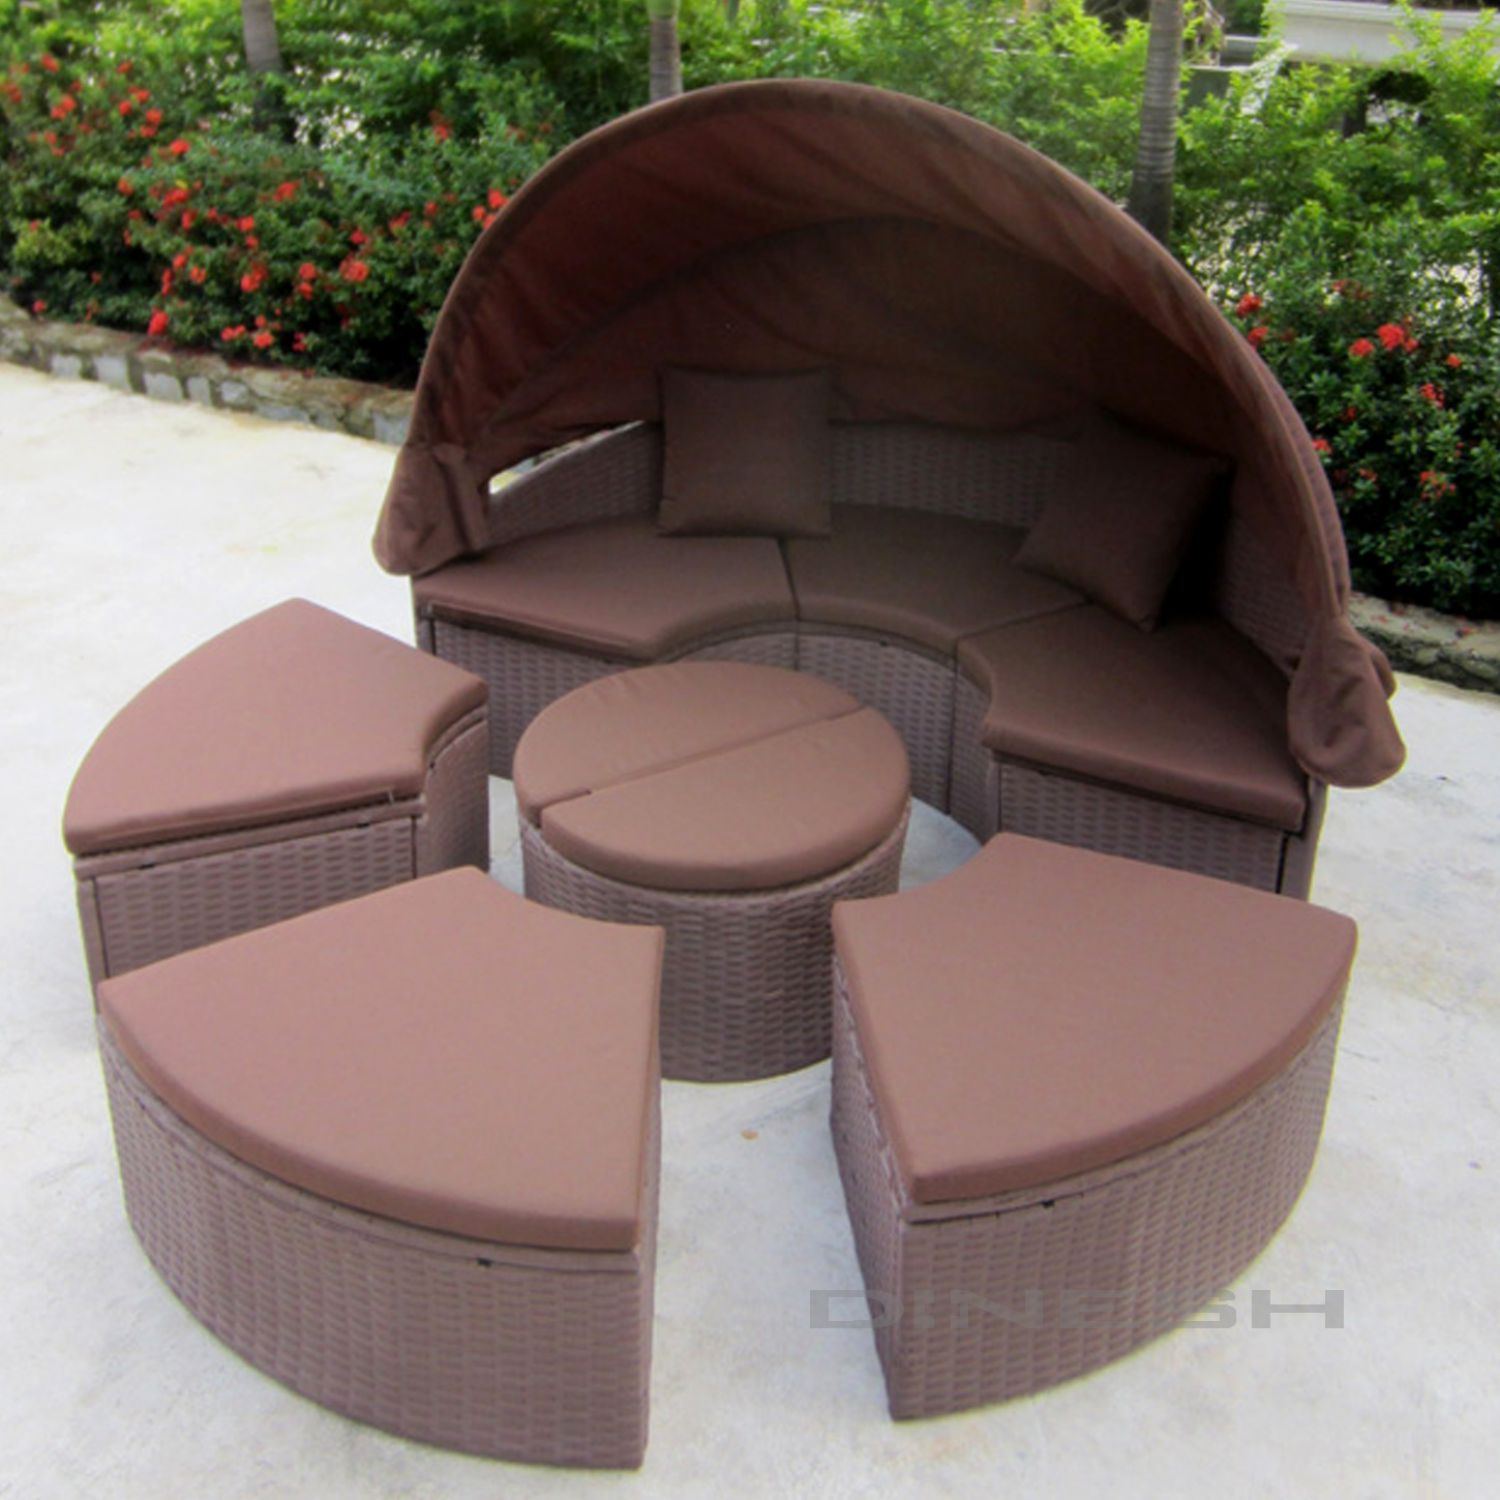 madrid polyrattan garten braun lounge gartenset sonneninsel gartenm bel ebay. Black Bedroom Furniture Sets. Home Design Ideas